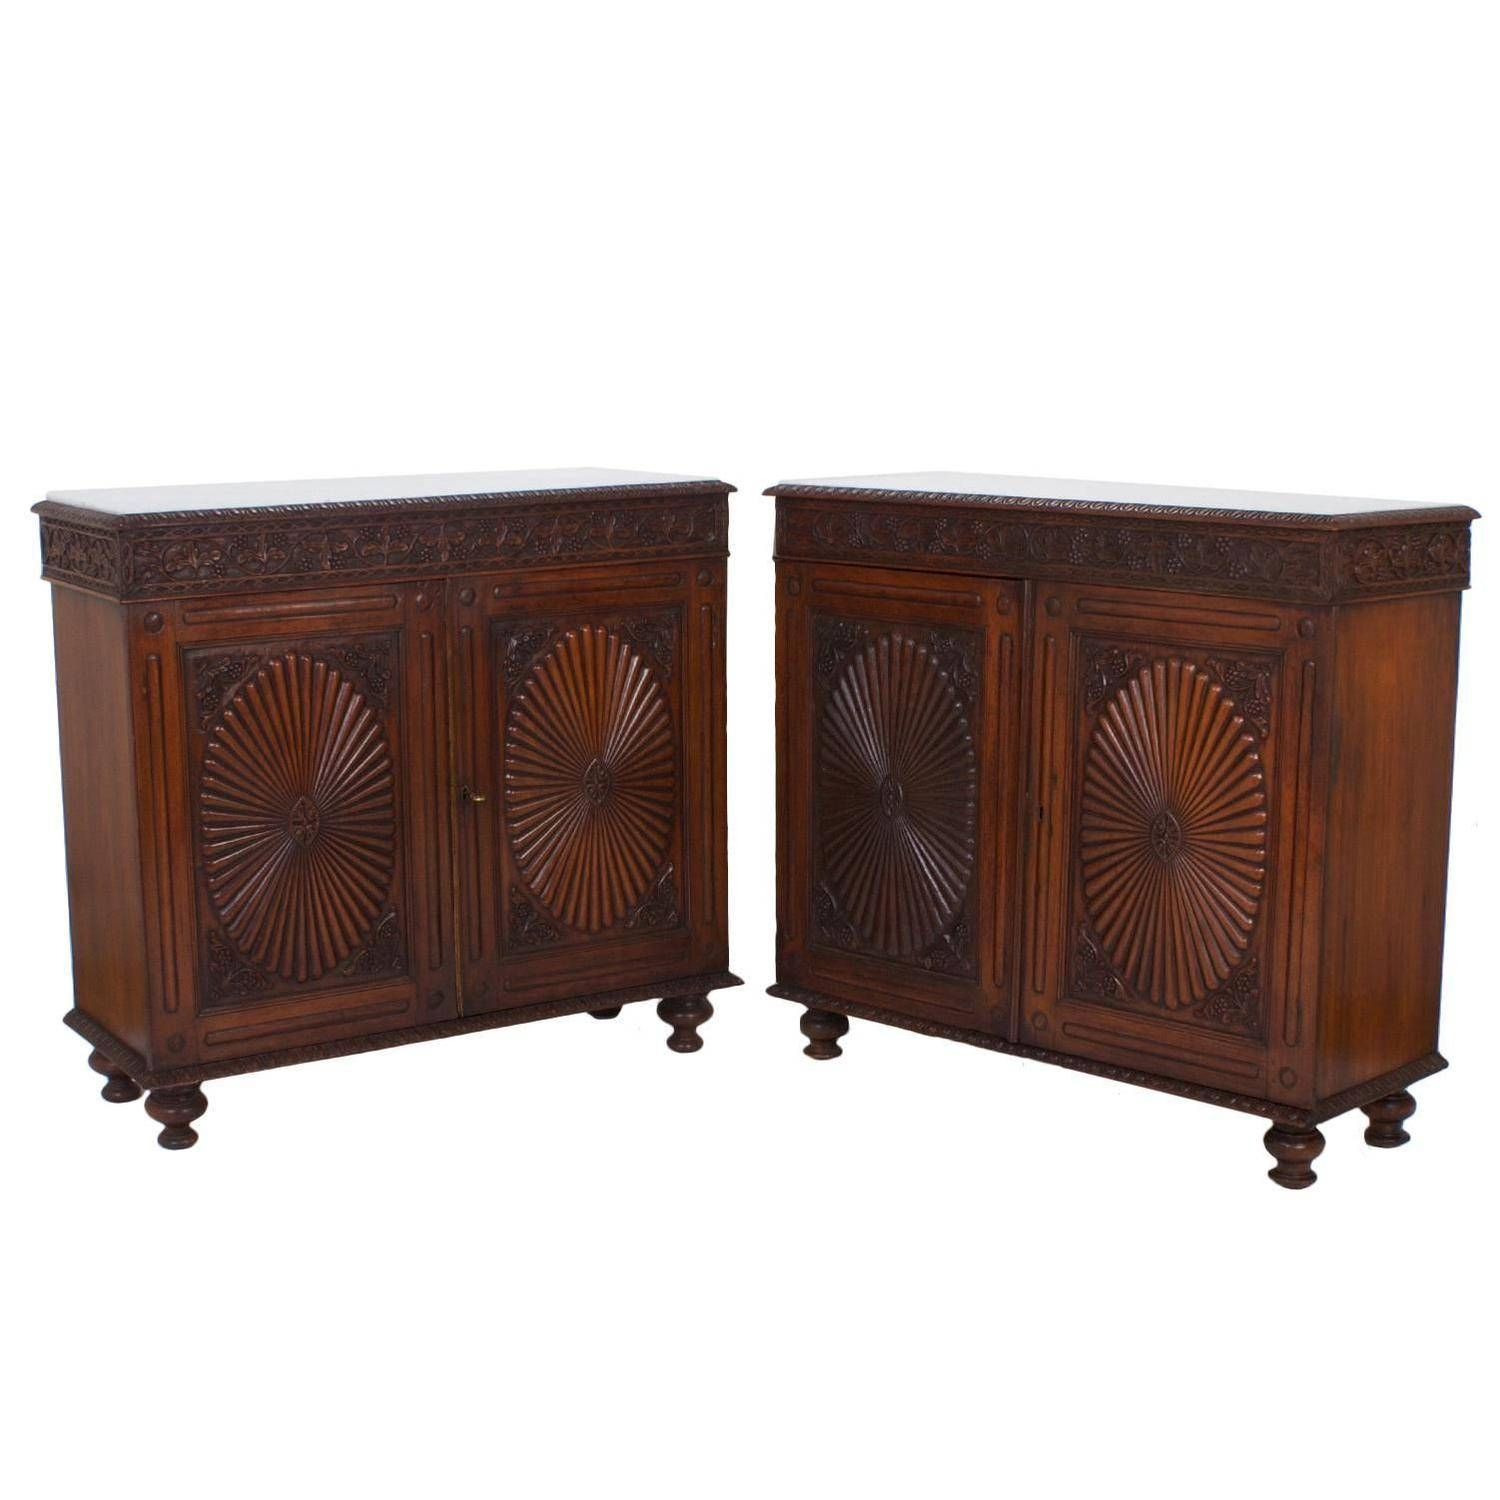 Pair Of Antique Anglo Indian Marble Top Sideboards Or Cabinets At Regarding Sideboards And Cabinets (View 11 of 15)